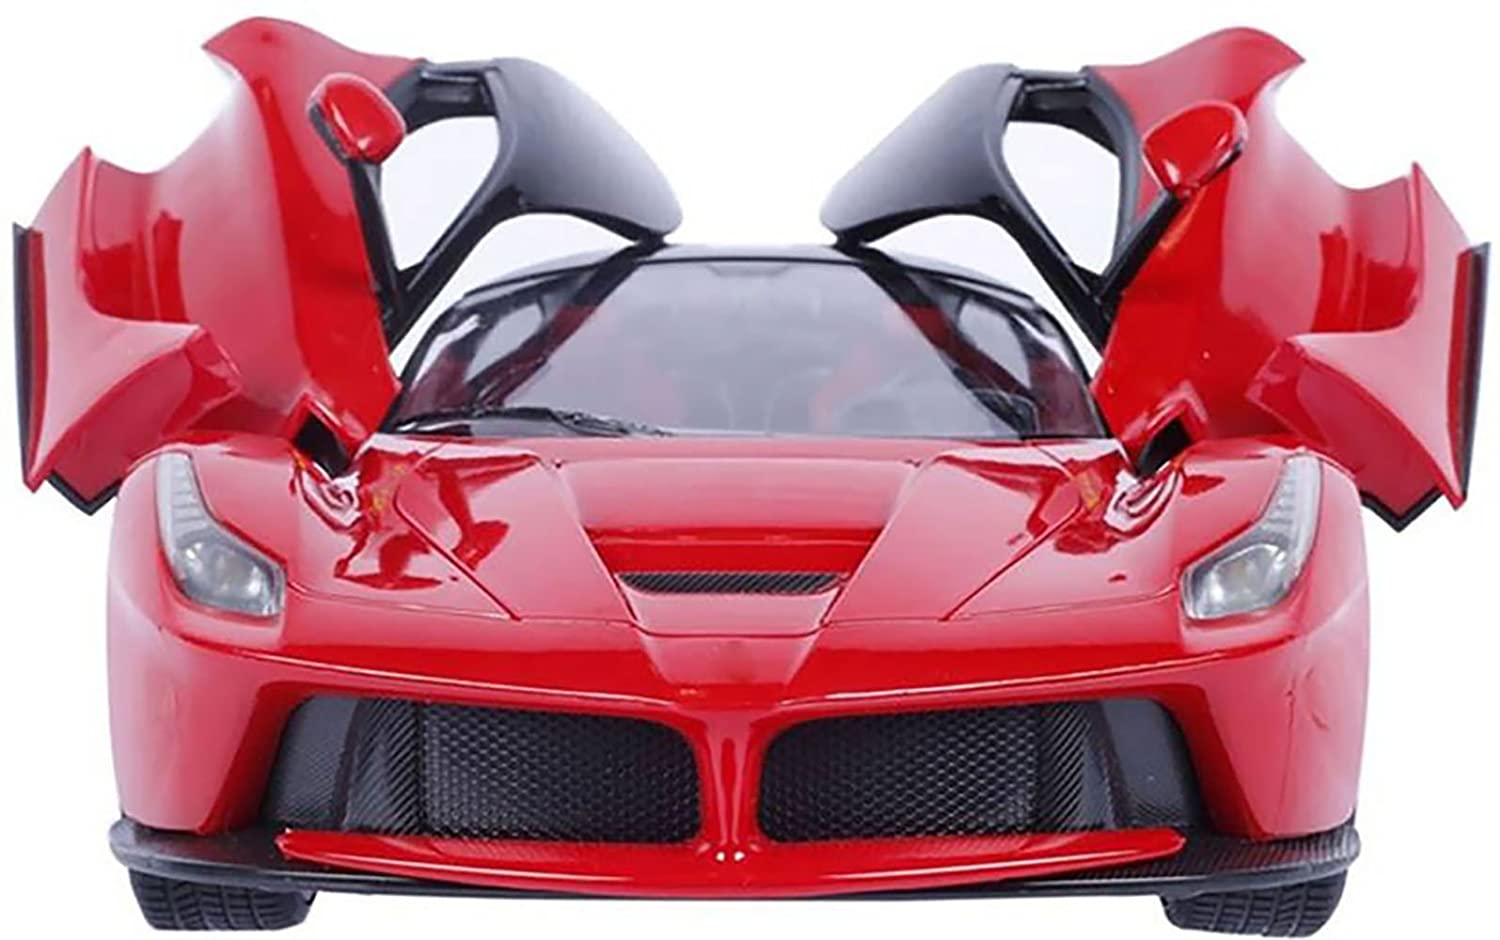 50% Off Or More Off On Best Selling Toys By Amazon | Saffire Remote Controlled Ferrari with Opening Doors, Red @ Rs.749